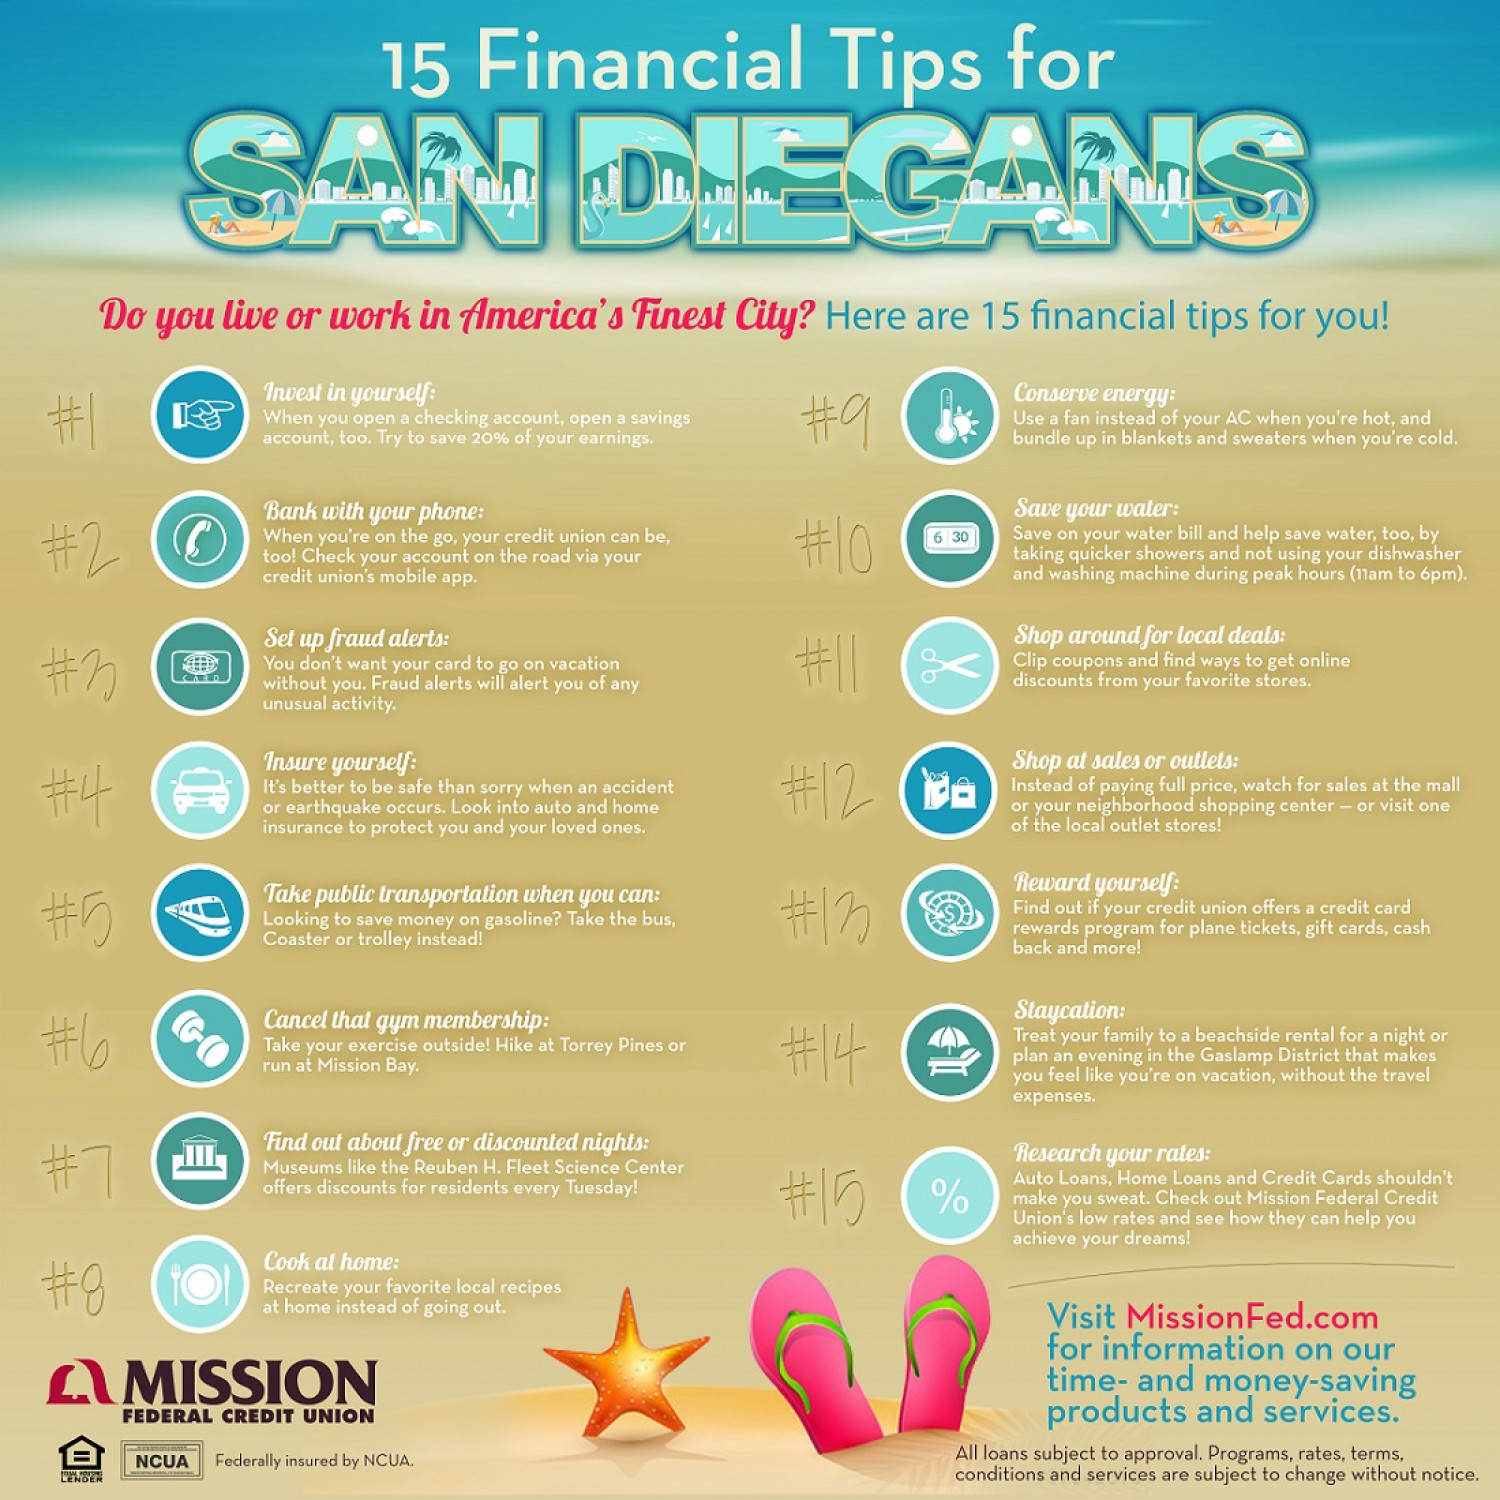 15 Financial Tips for San Diegans Infographic